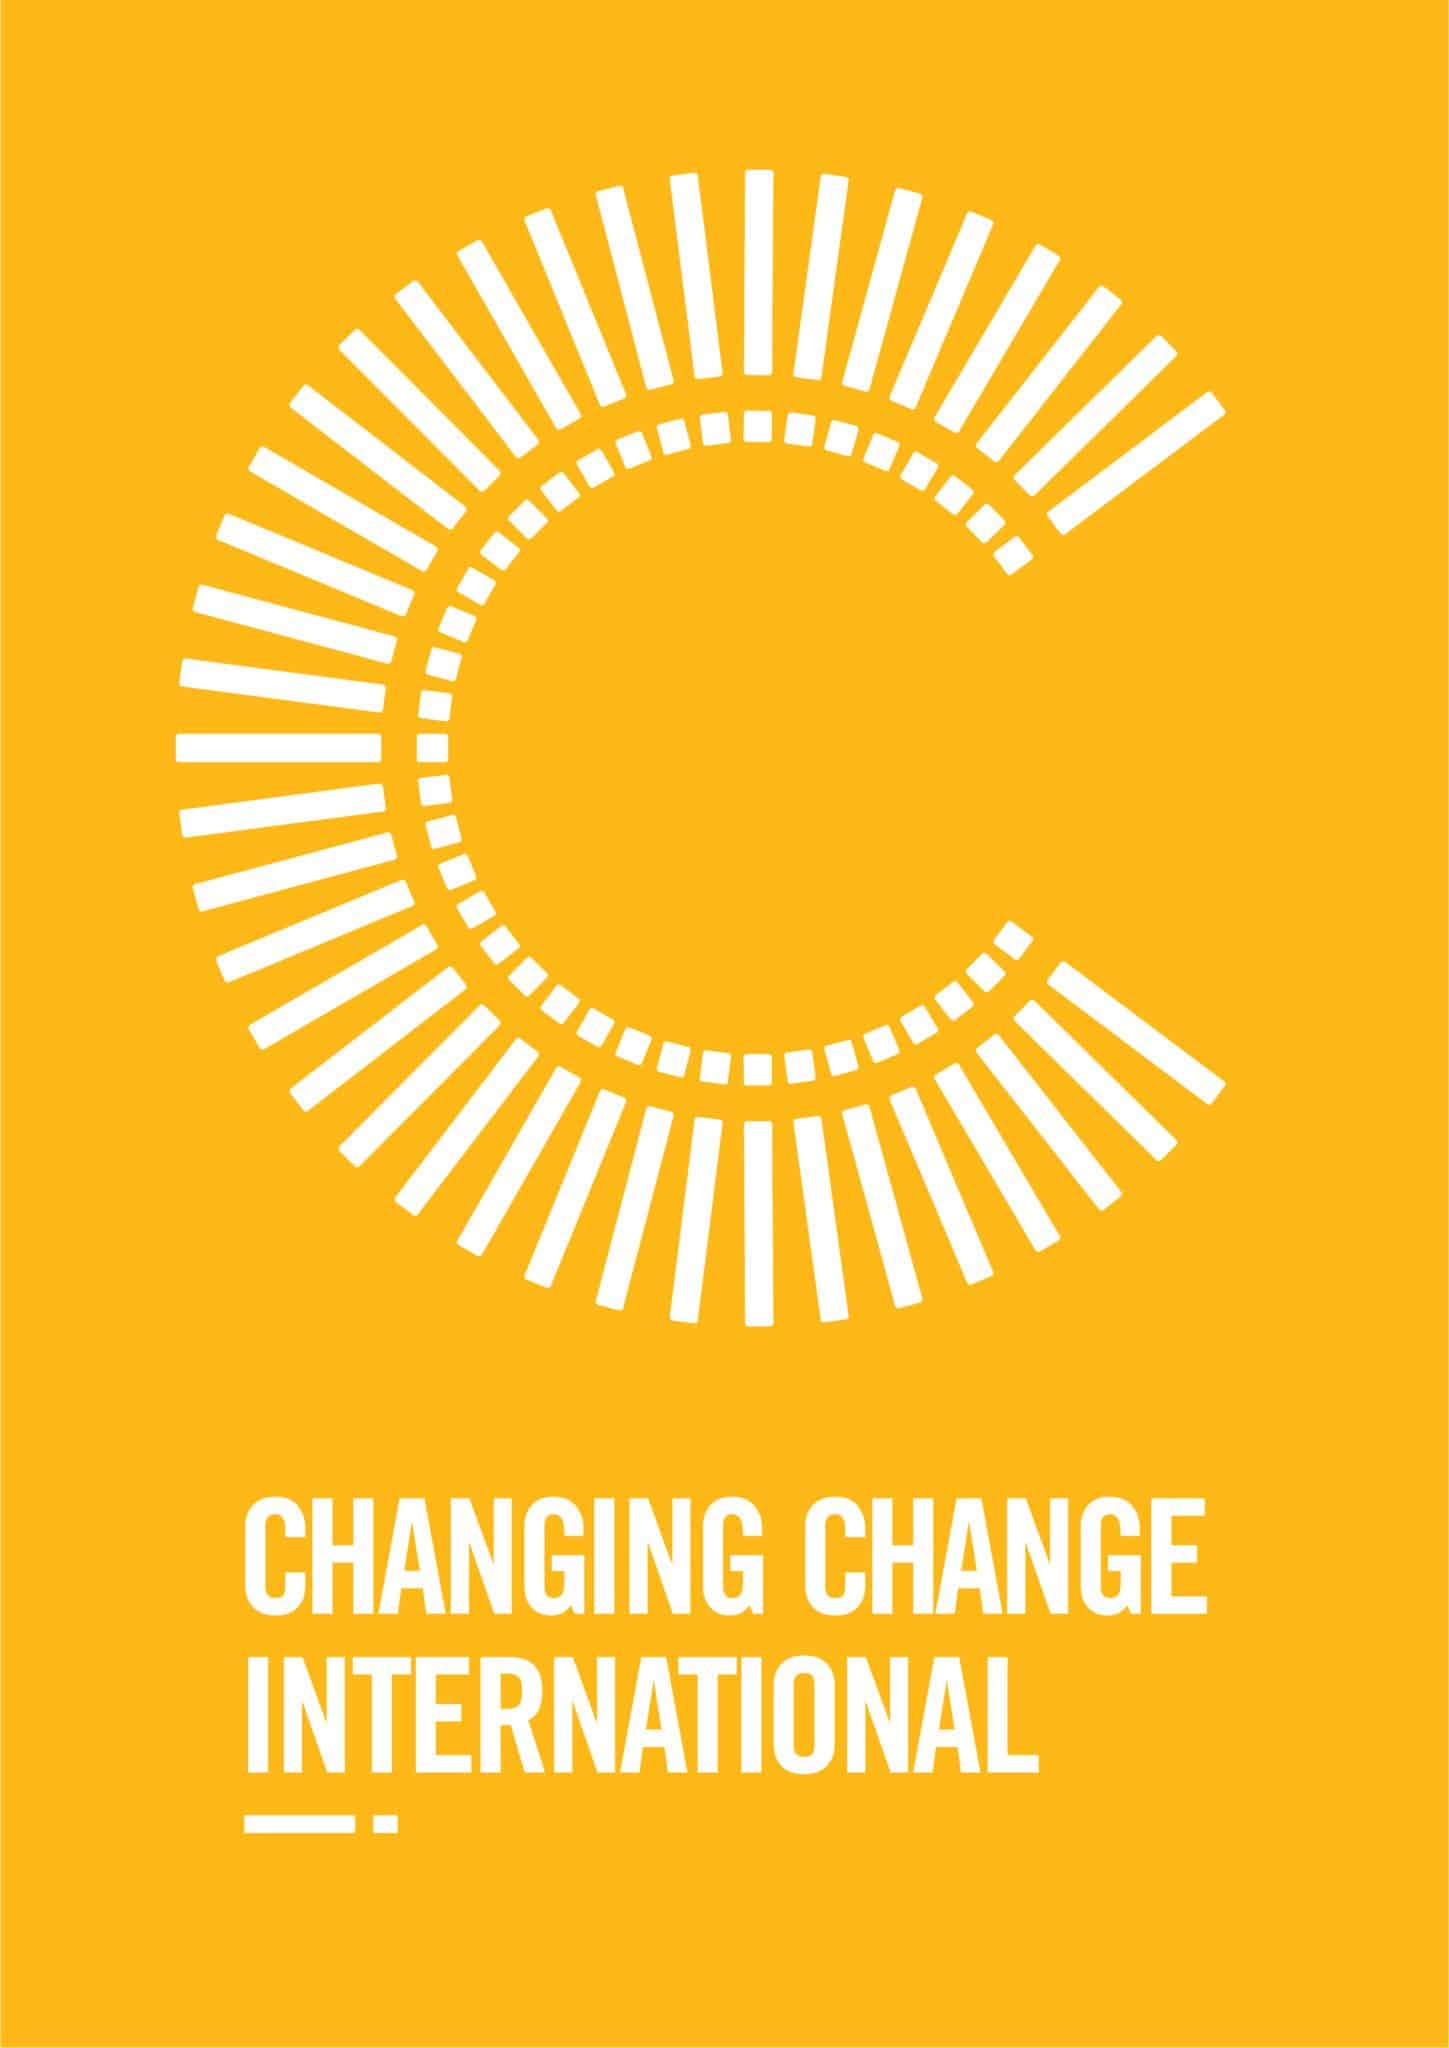 Changing Change International (CCI)